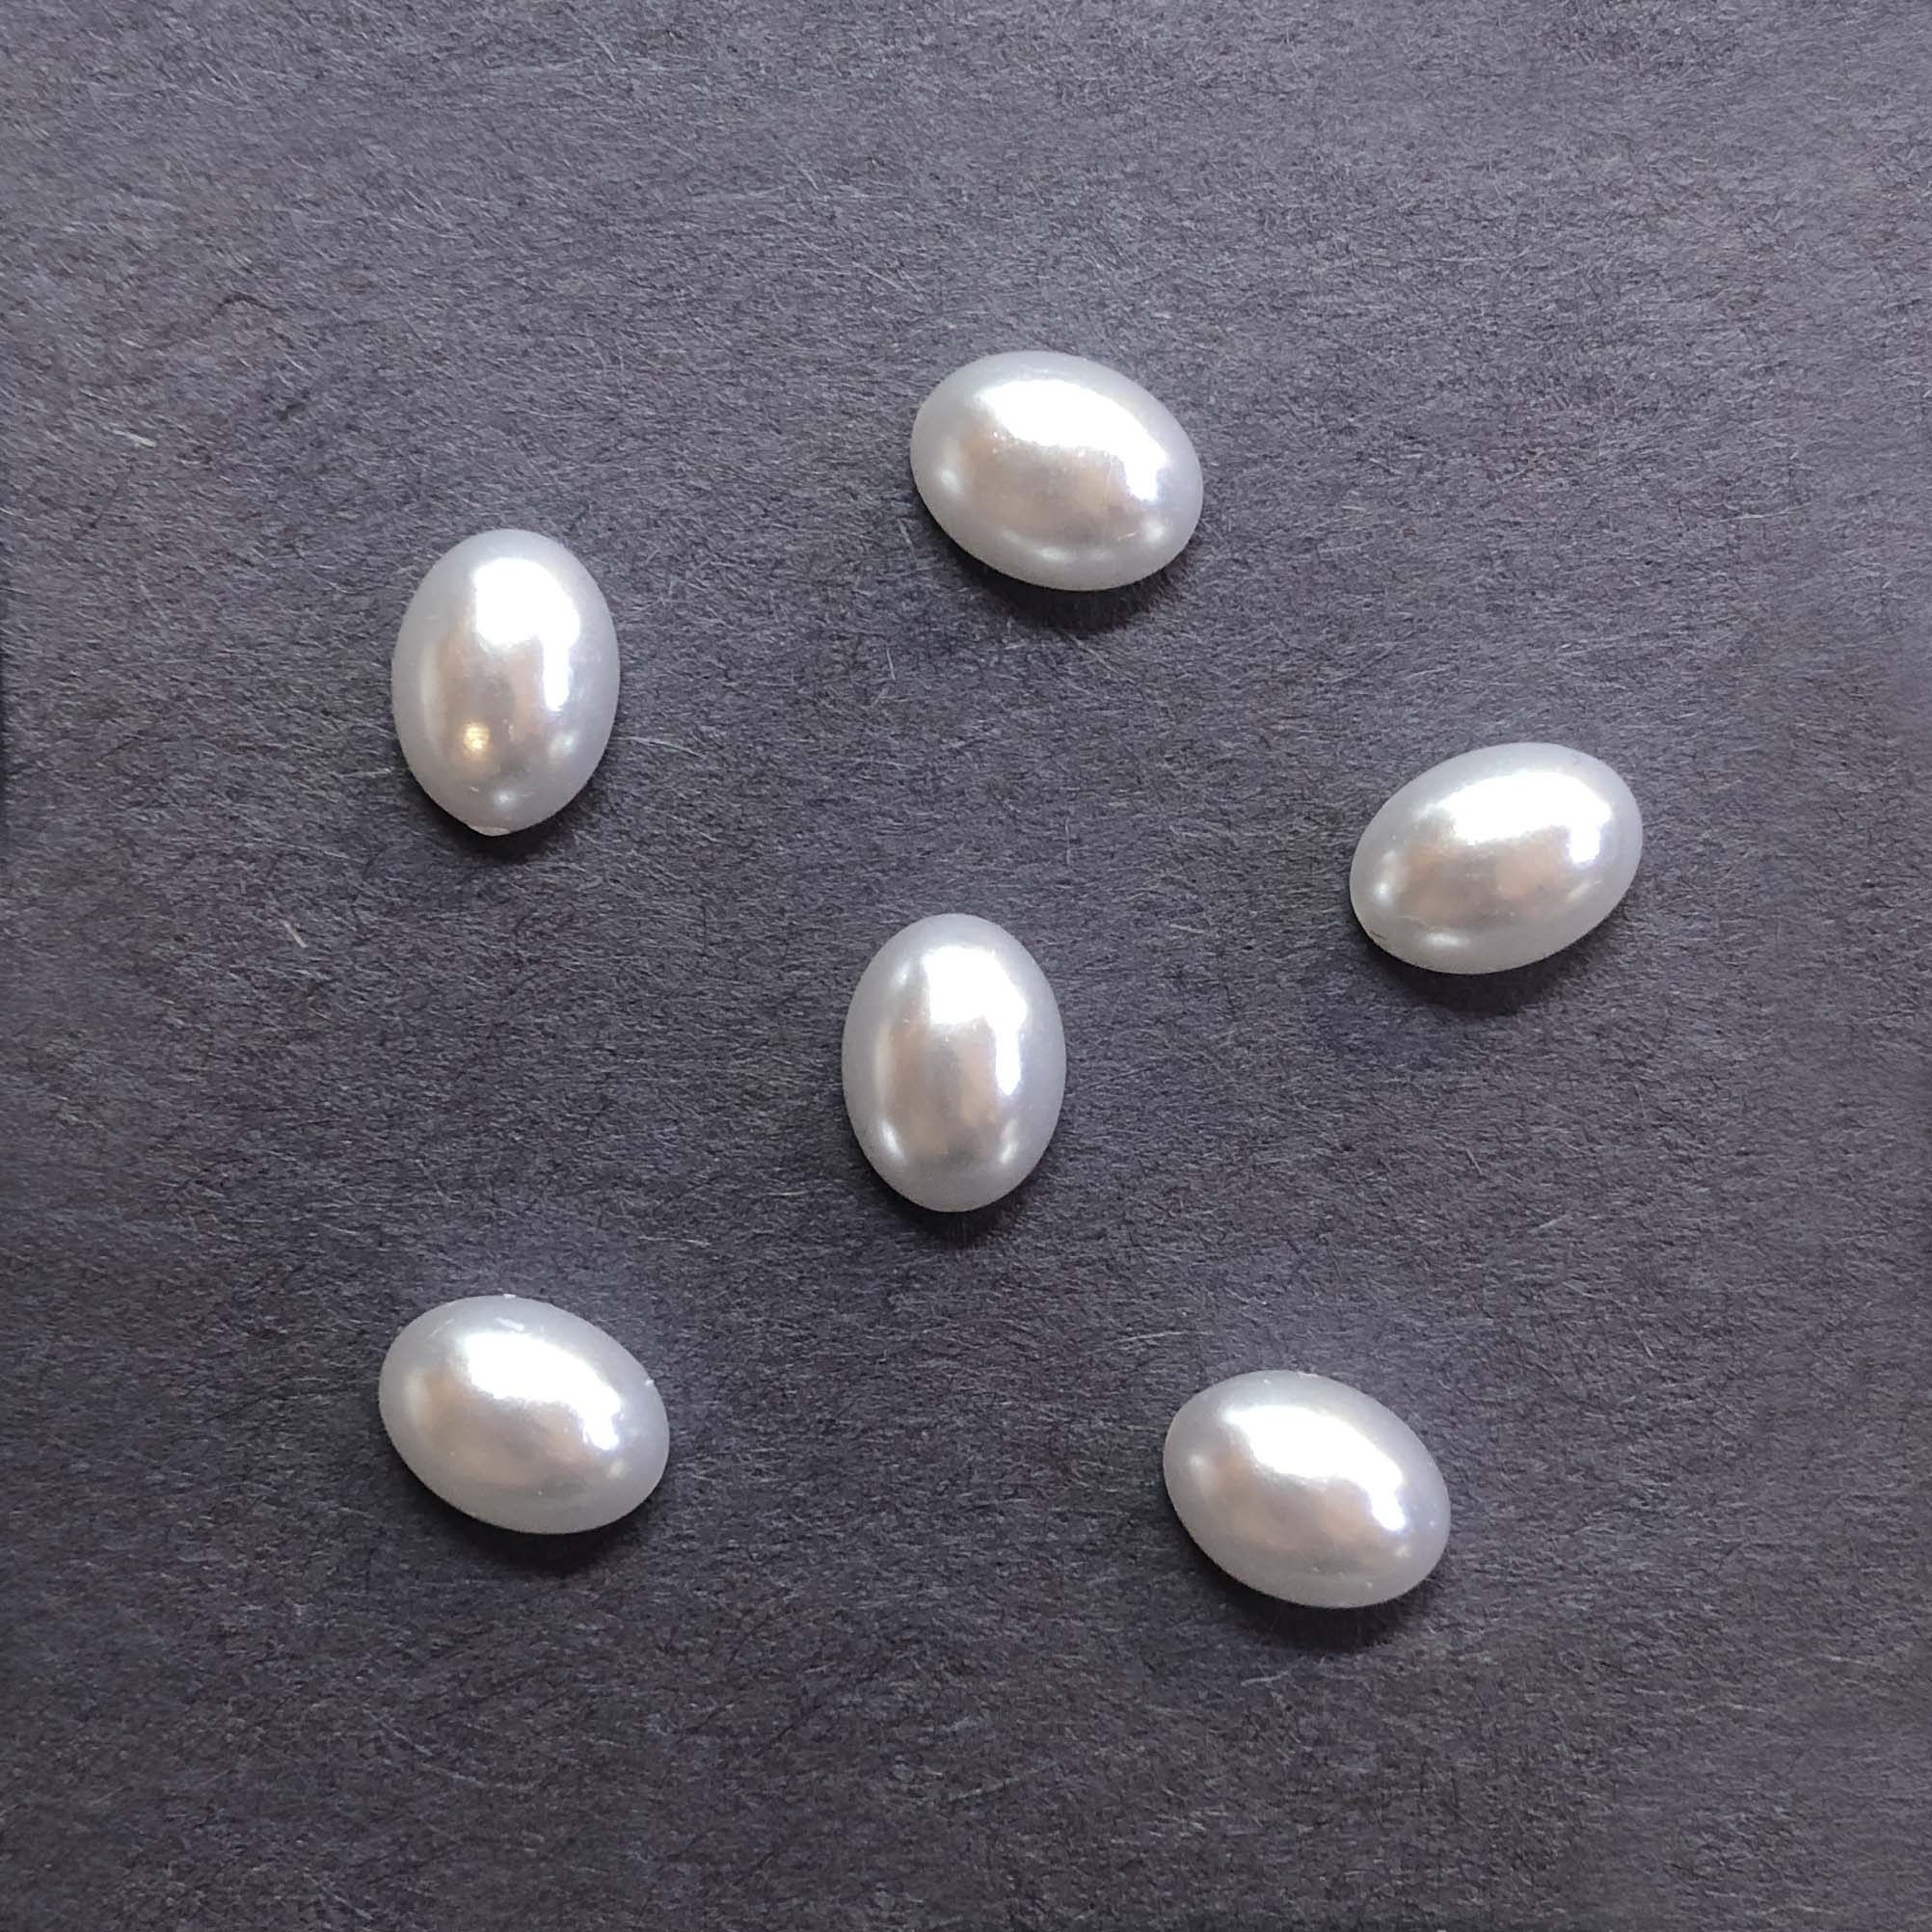 pearl cabochons, snow white cabs, 09776, vintage jewelry supplies, jewelry making supplies, 8 x 6mm cabs, pearl cabs, flat back cabochons, white cabochons, pearls, white pearls